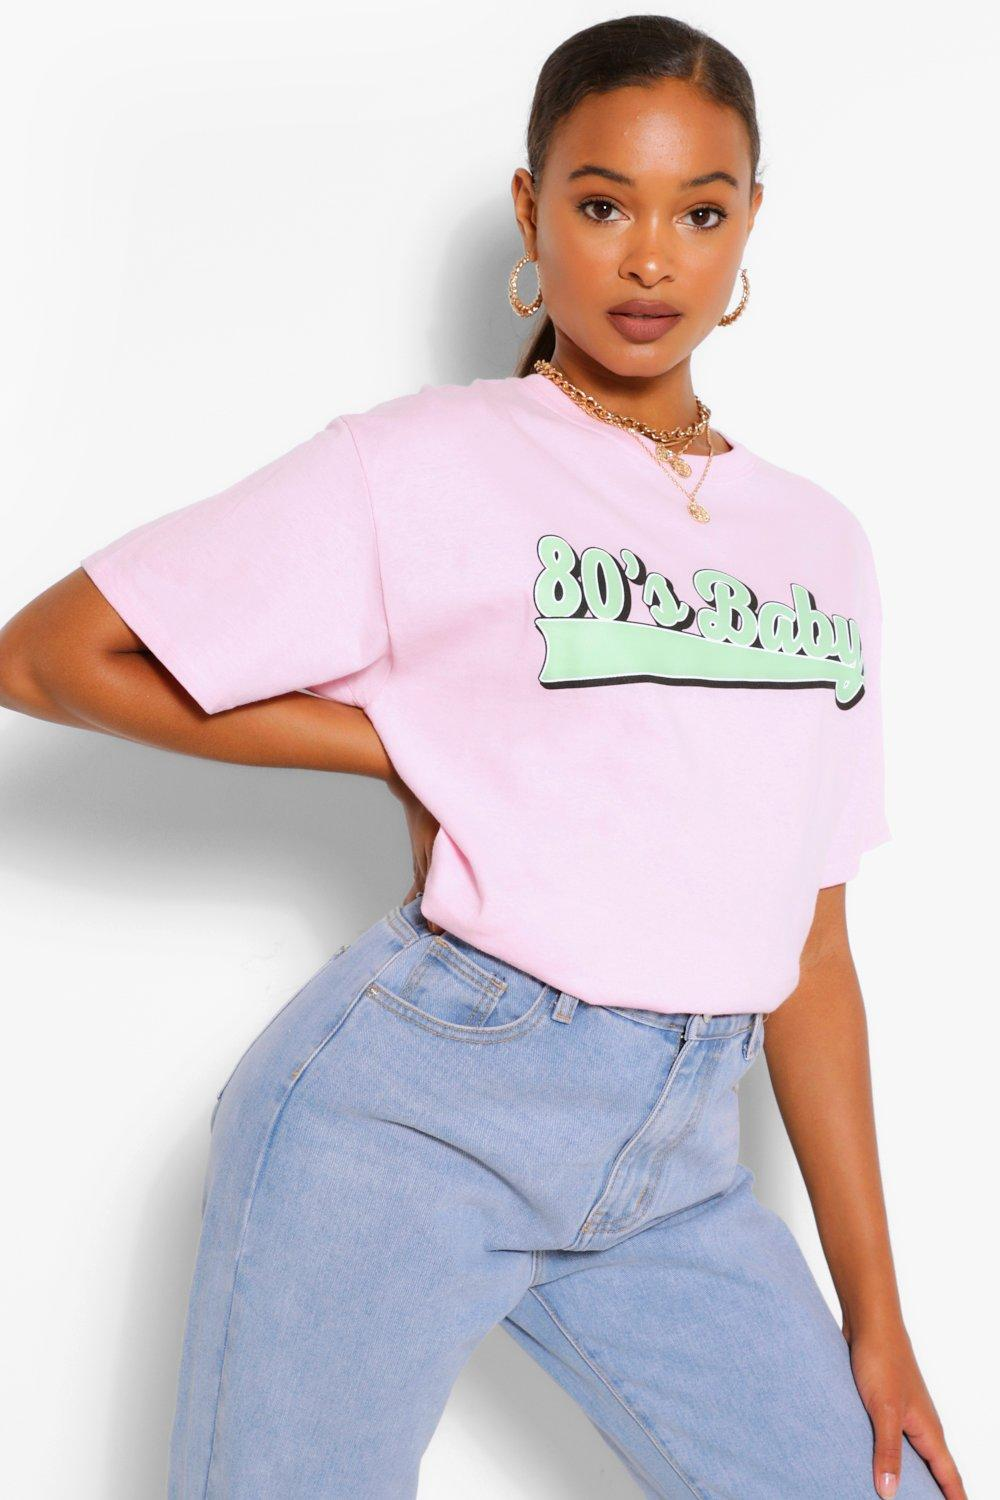 80s Costumes, Outfit Ideas- Girls and Guys Womens 80S Baby Graphic T-Shirt - Pink - M $8.00 AT vintagedancer.com